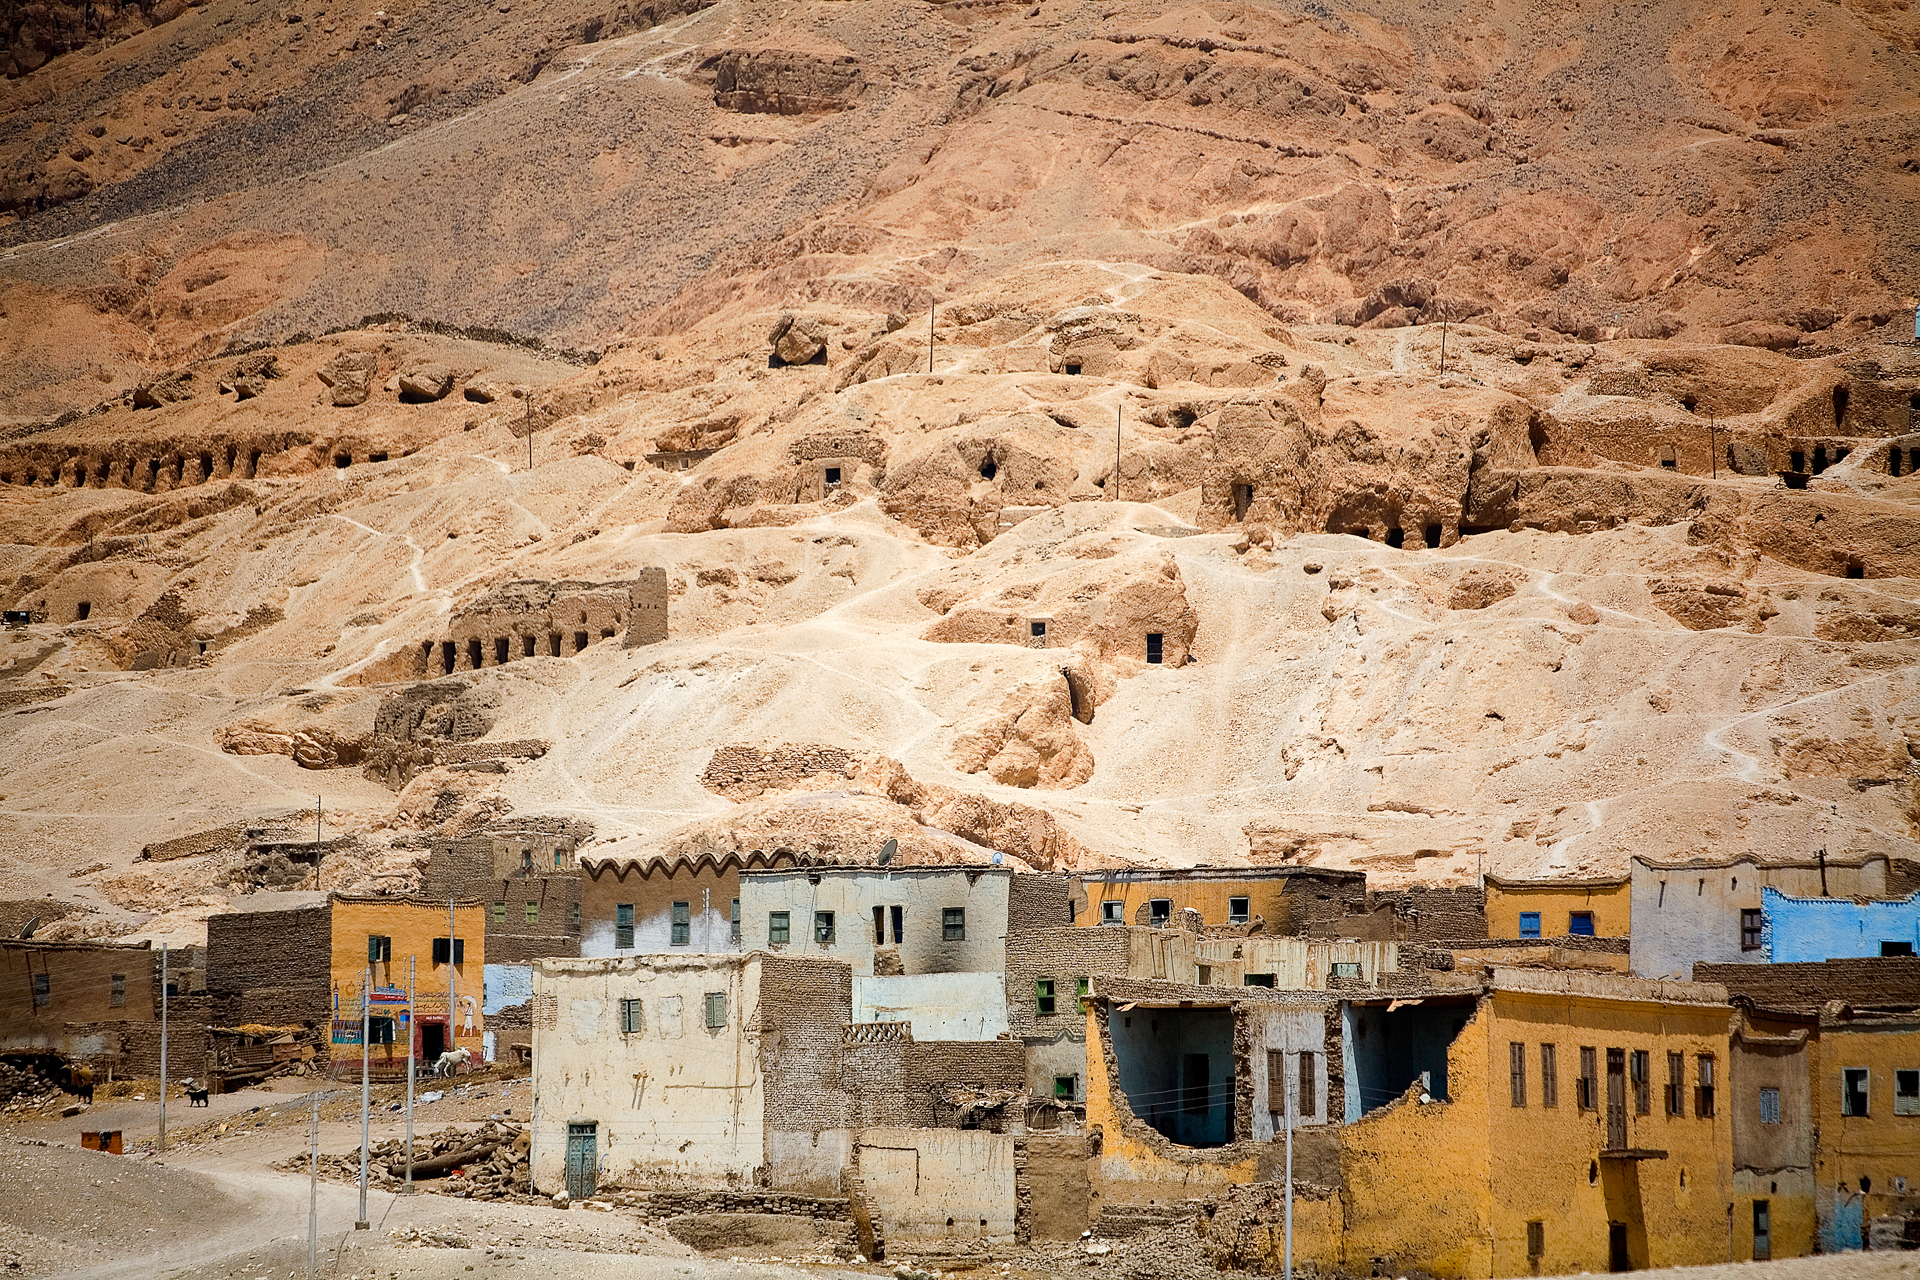 A ghost town in the Sinai Desert.